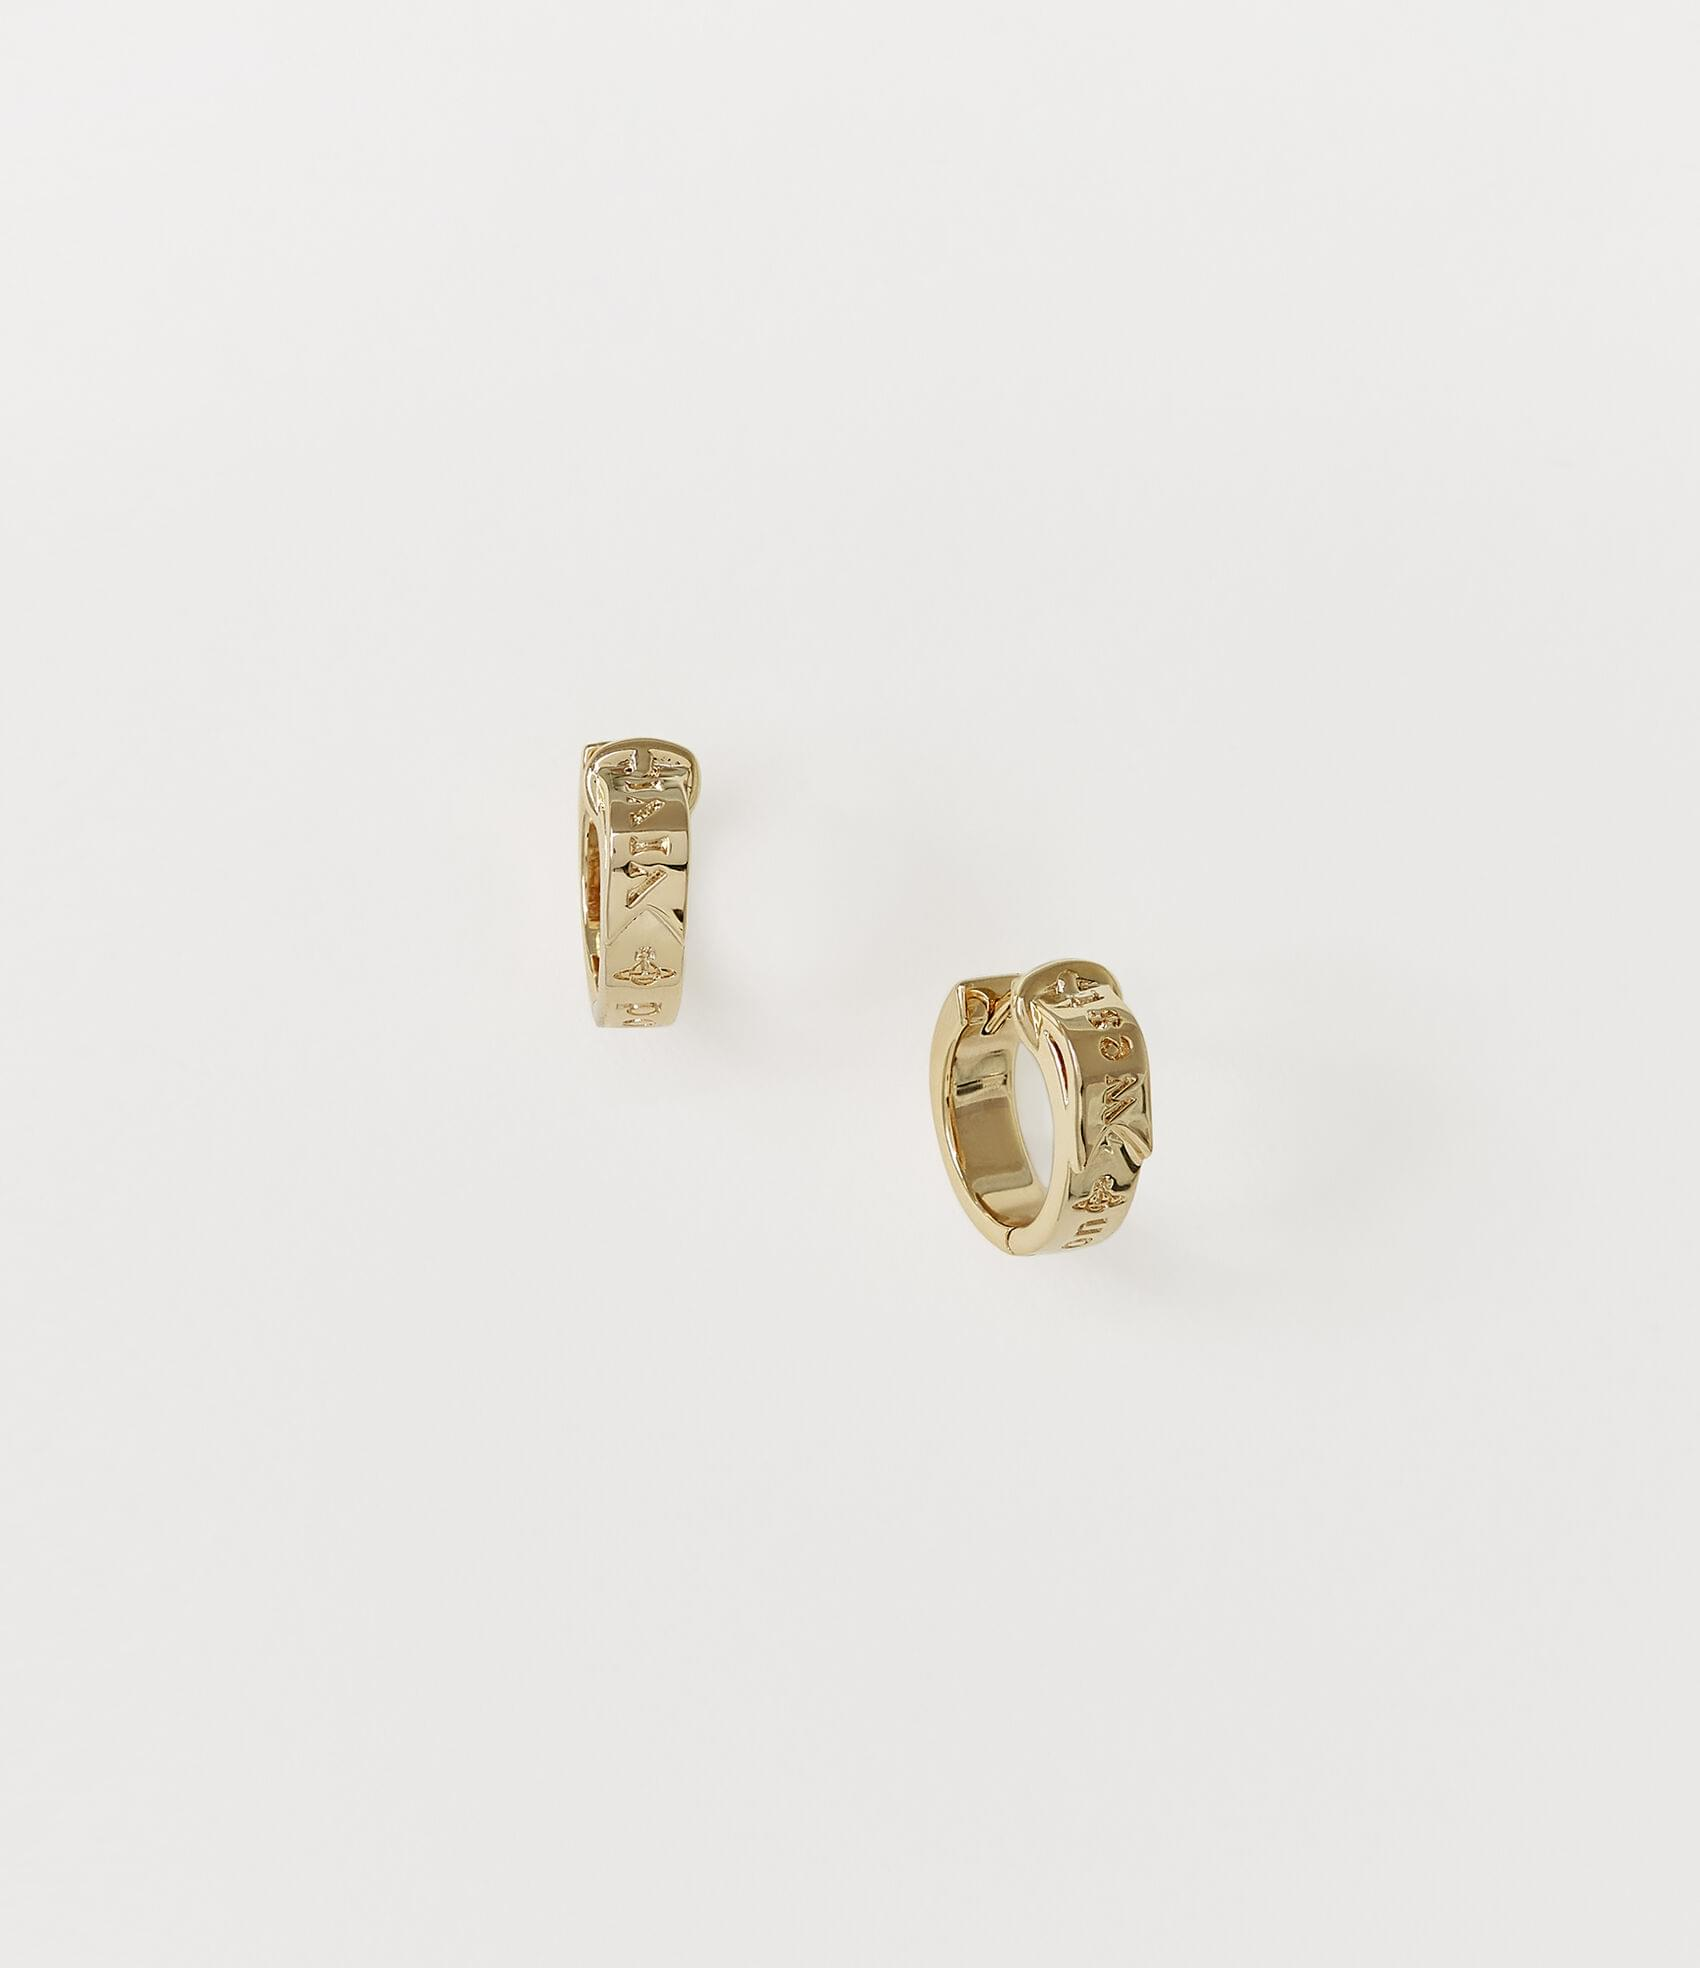 Vivienne Westwood BOBBY EARRINGS GOLD TONE